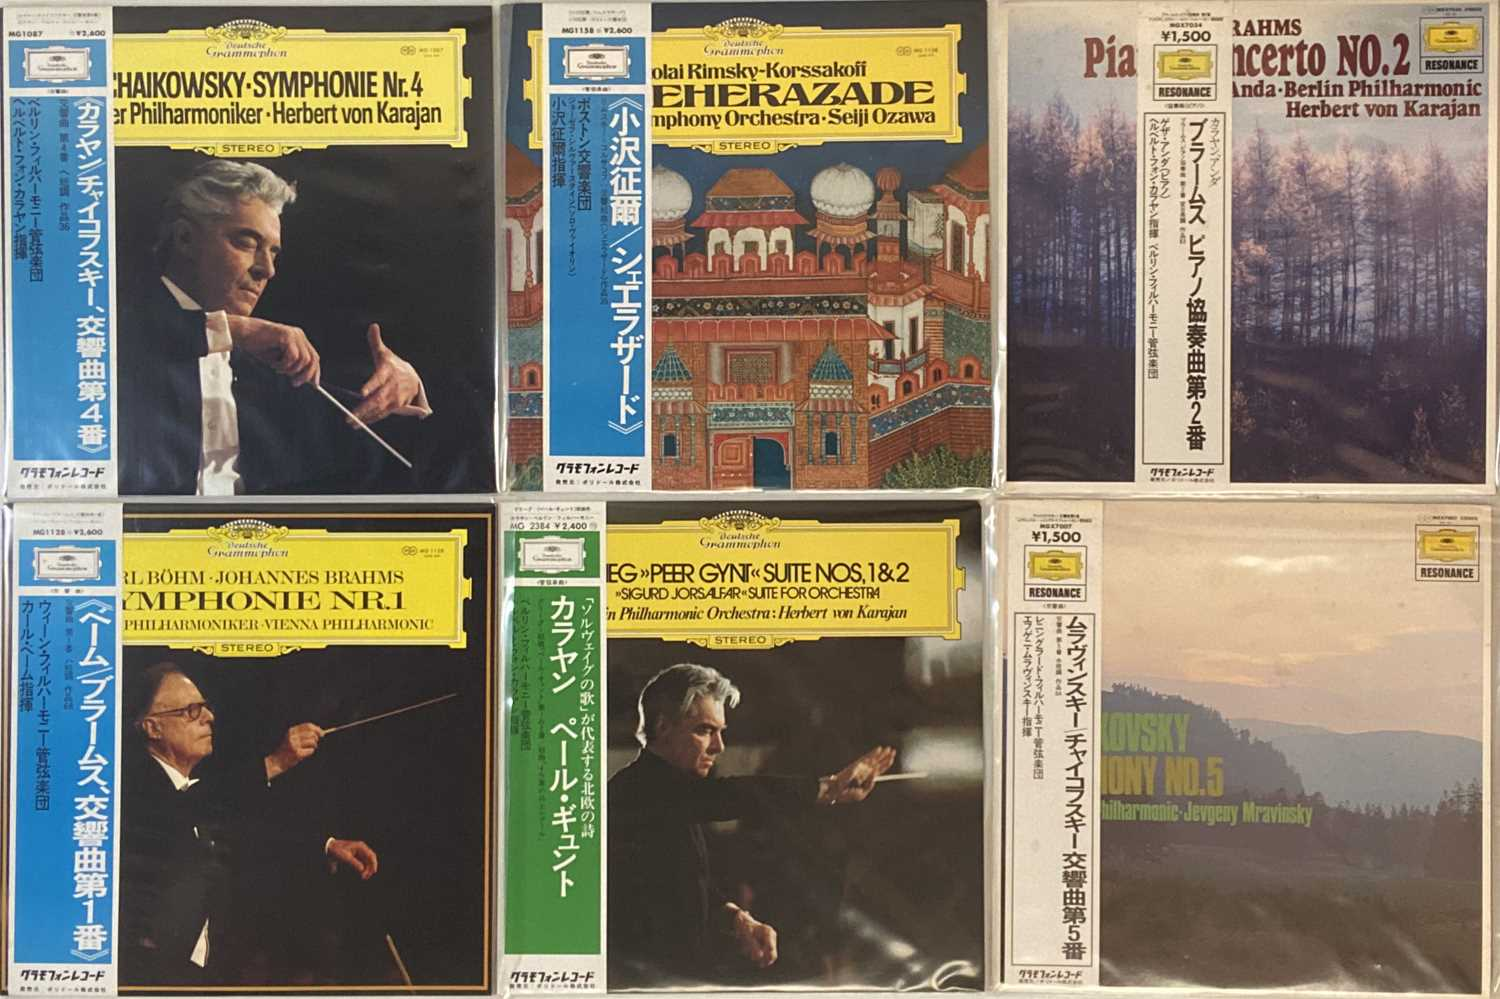 CLASSICAL - JAPANESE PRESSING LPs - Image 4 of 6